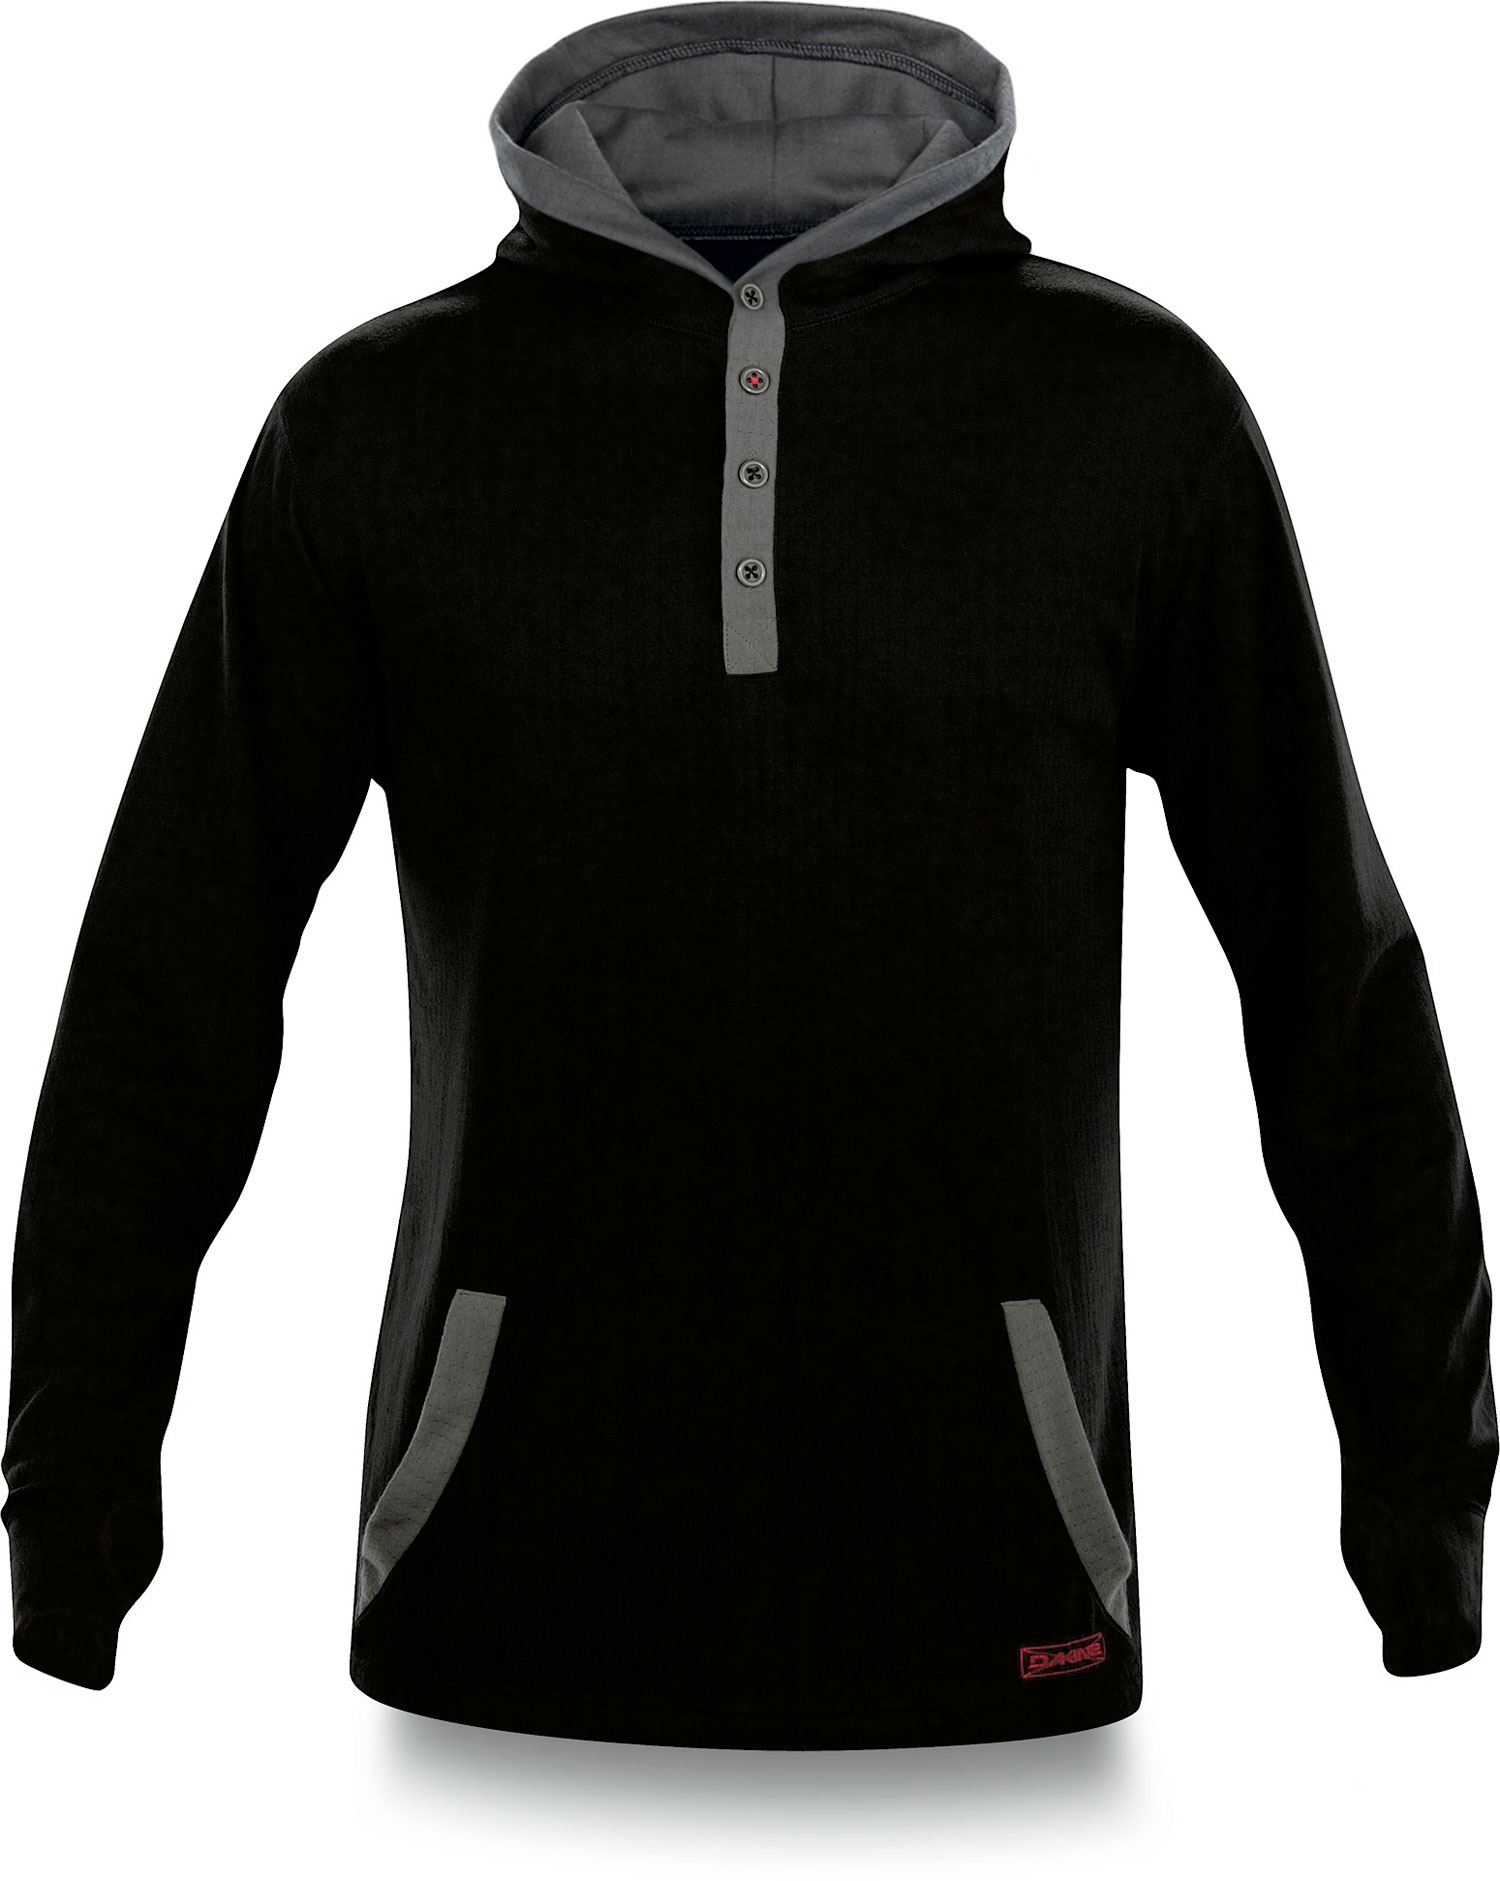 Surf Built of two layers for warmth and dryness without the bulk, the Dakine Gunner baselayer is designed to keep you comfortable and looking good, tooKey Features of the Dakine Gunner Hoodie Baselayer Top: 100% Polyester double-knit Two layers for warmth and dryness with no bulk AEGIS Microbe Shield antibacterial Fitted hood Button front placket Thumb holes at cuffs - $55.00